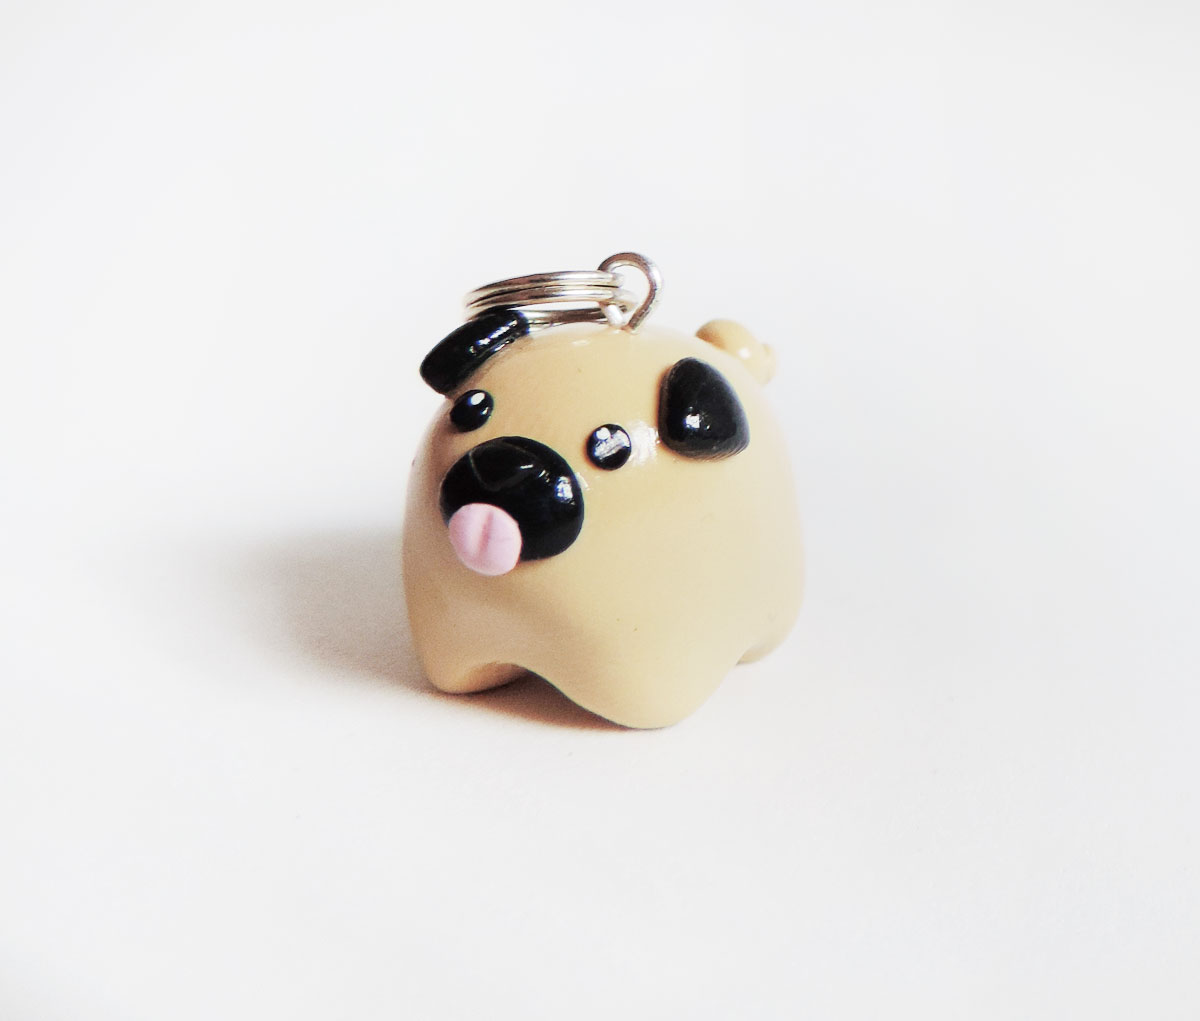 Kbisho wordpress besides Pharrell Williams Responds Black Girl Album Cover Backlash n 4868620 also 1 furthermore The Magnificent Seven as well 4104665 Cute Fat Pug Necklace. on animal clay sculpture dogs